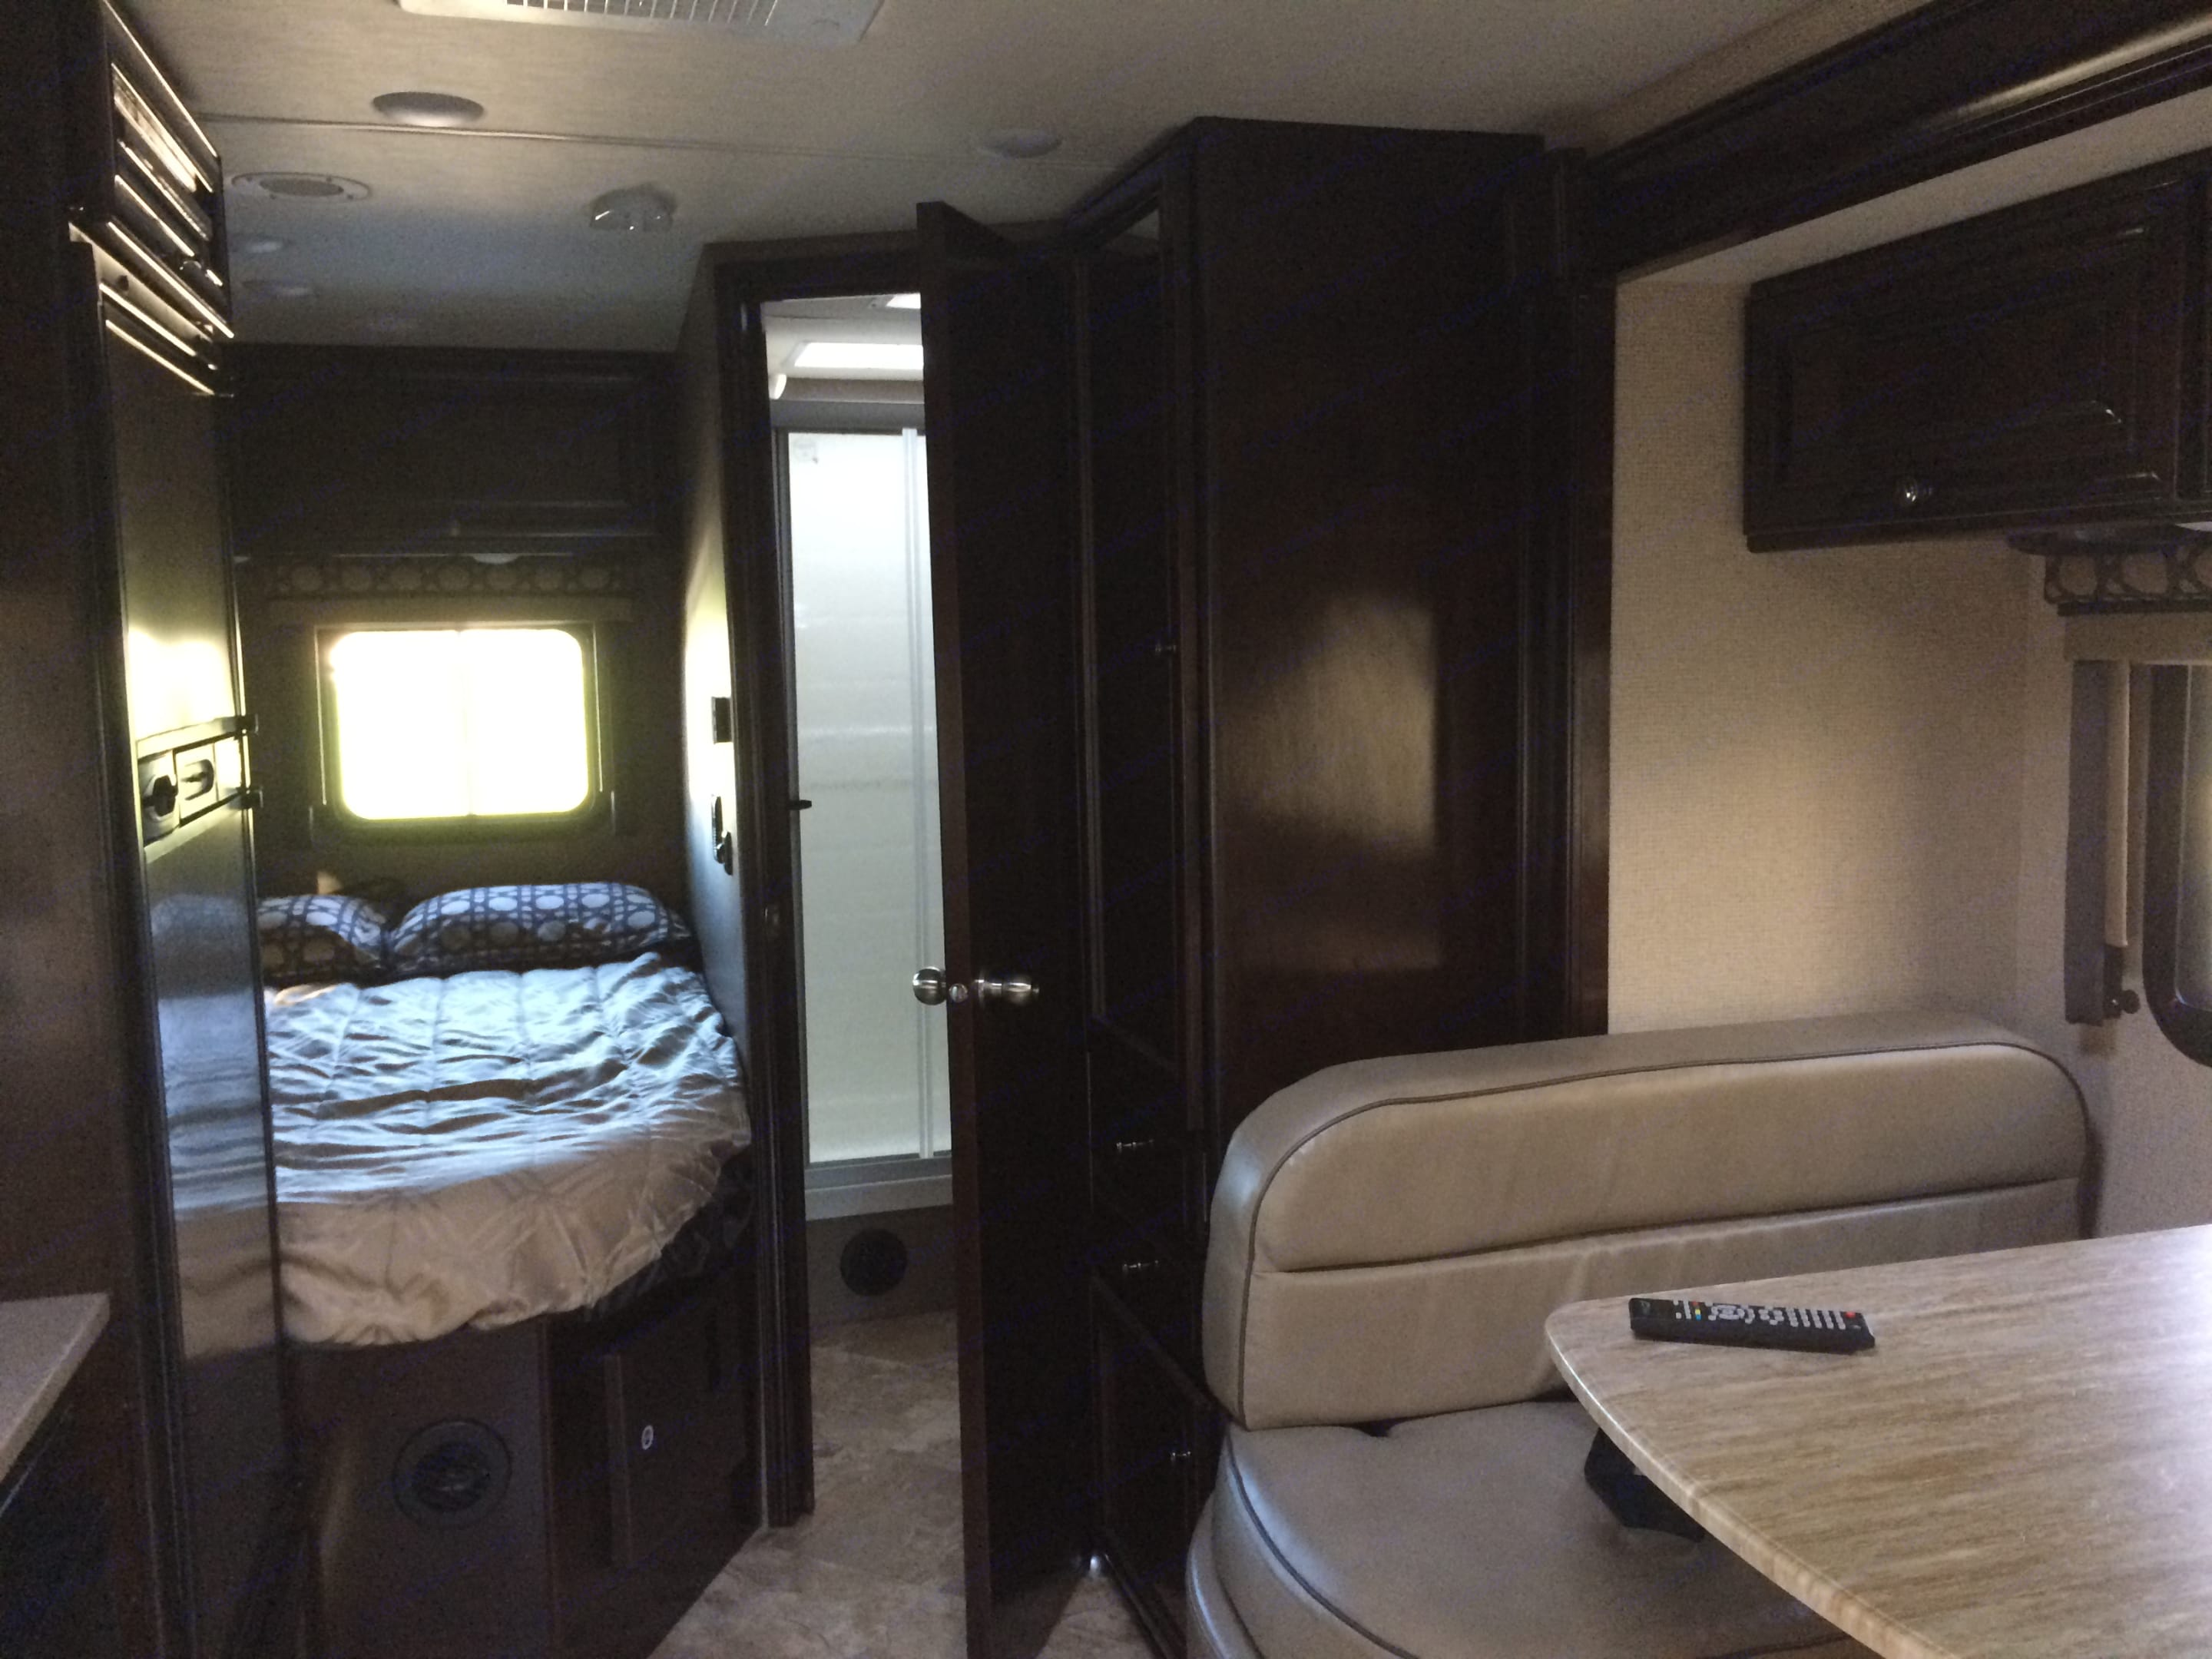 Queen Bed and bath room. Thor Motor Coach Citation 2017